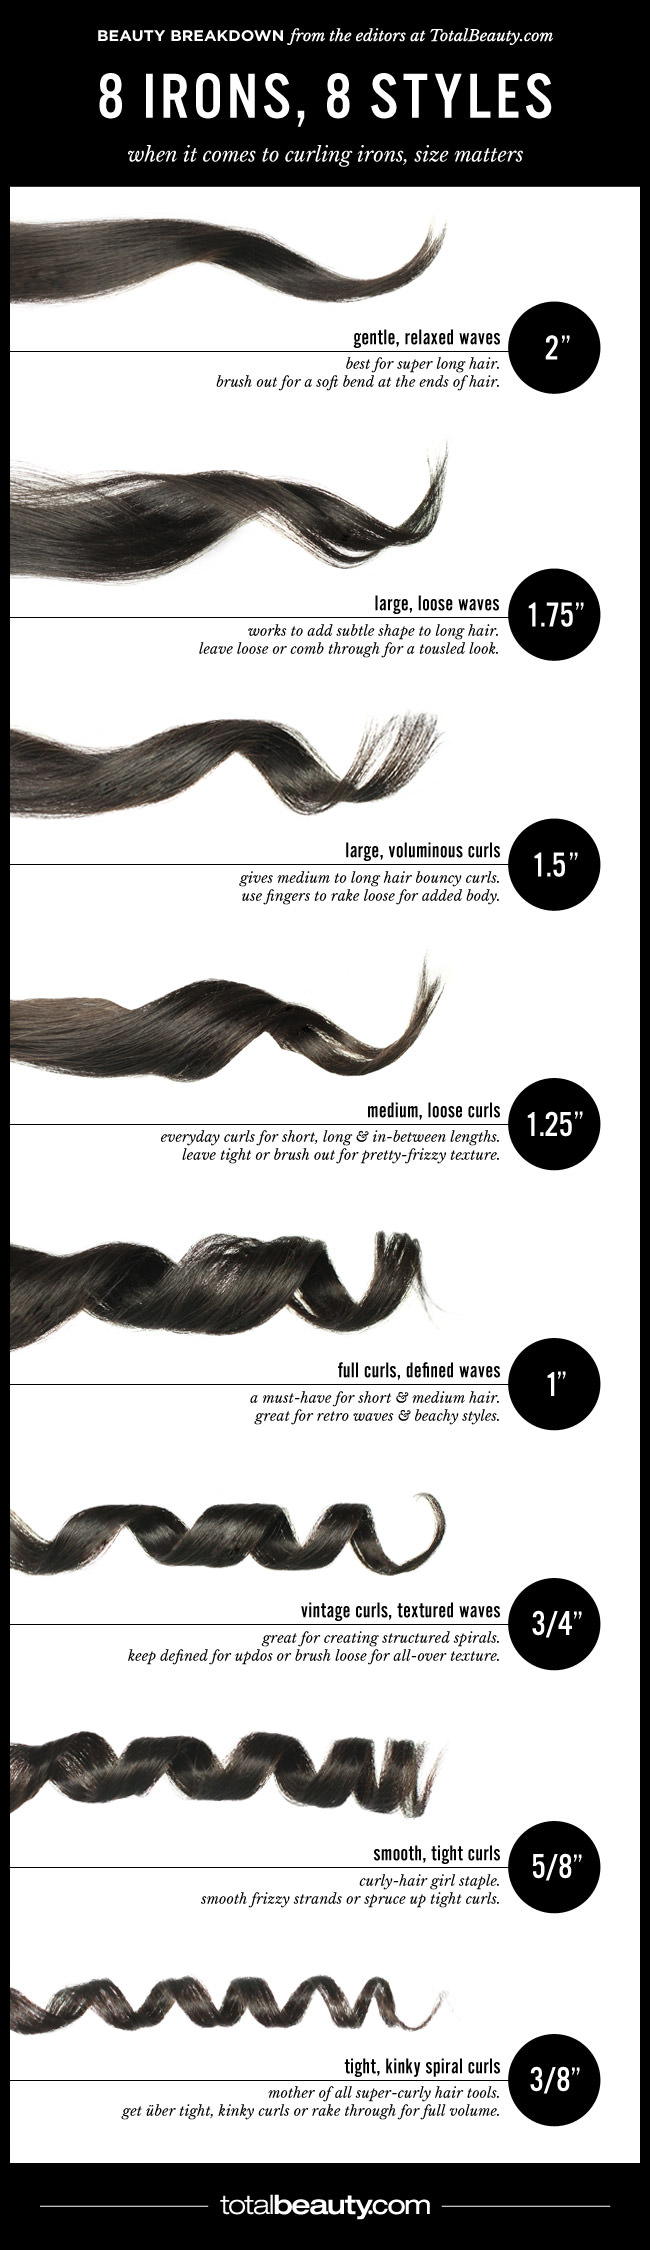 How Curling Iron Sizes Affect The Curl Results